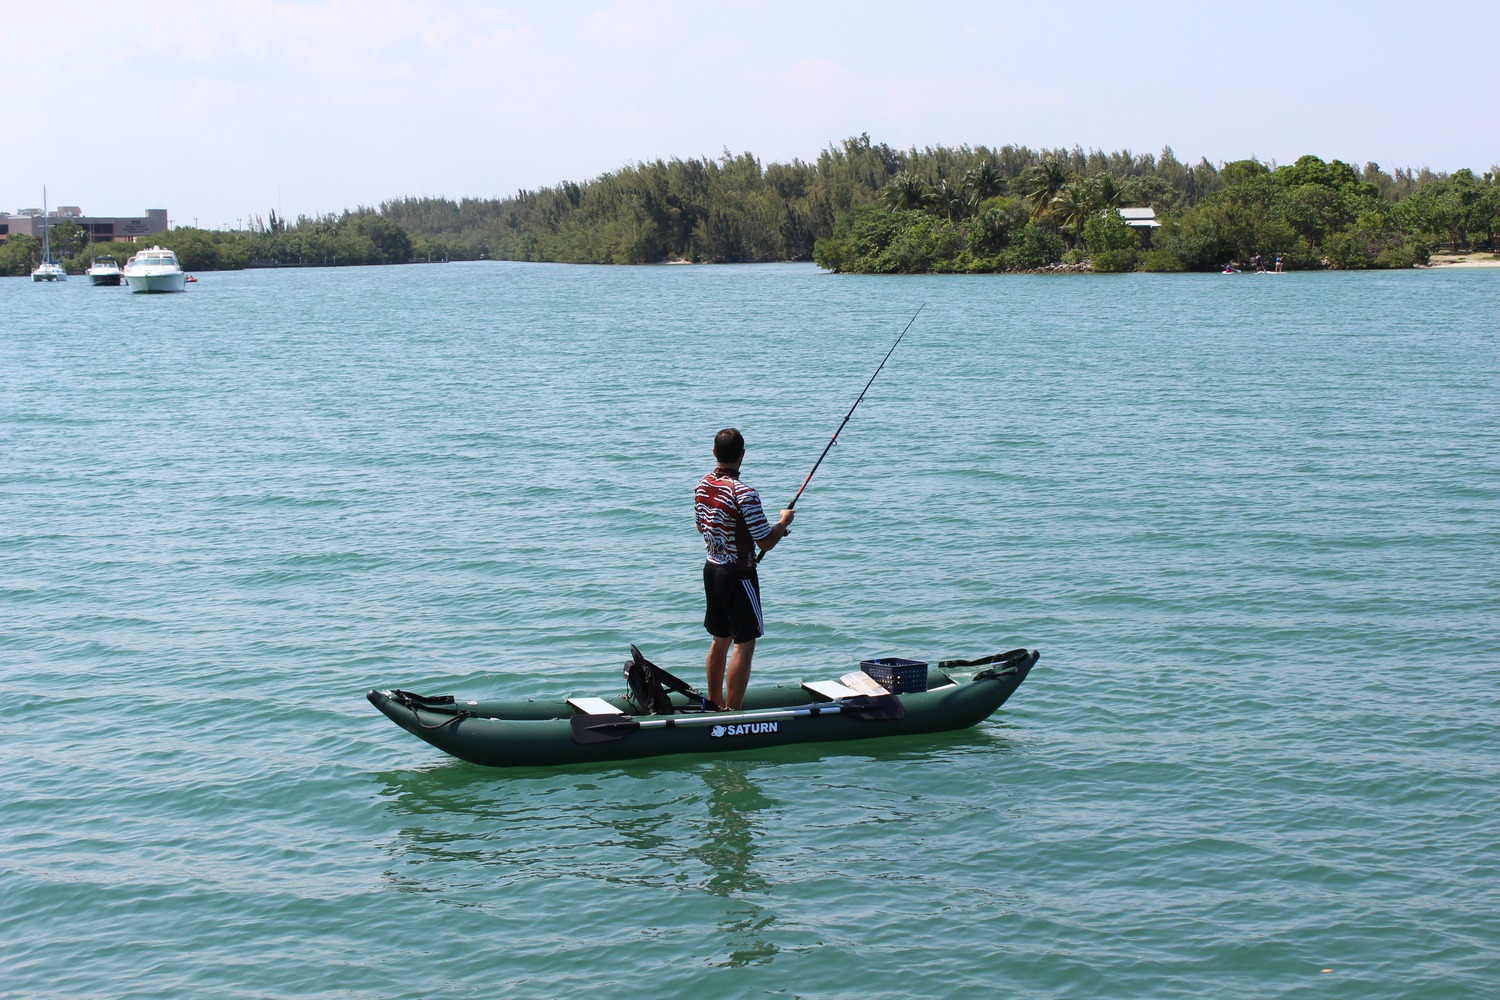 13' Saturn Ocean Fishing Kayak - Standing is Simple on the Dropstitch Rigid Inflatable Floor